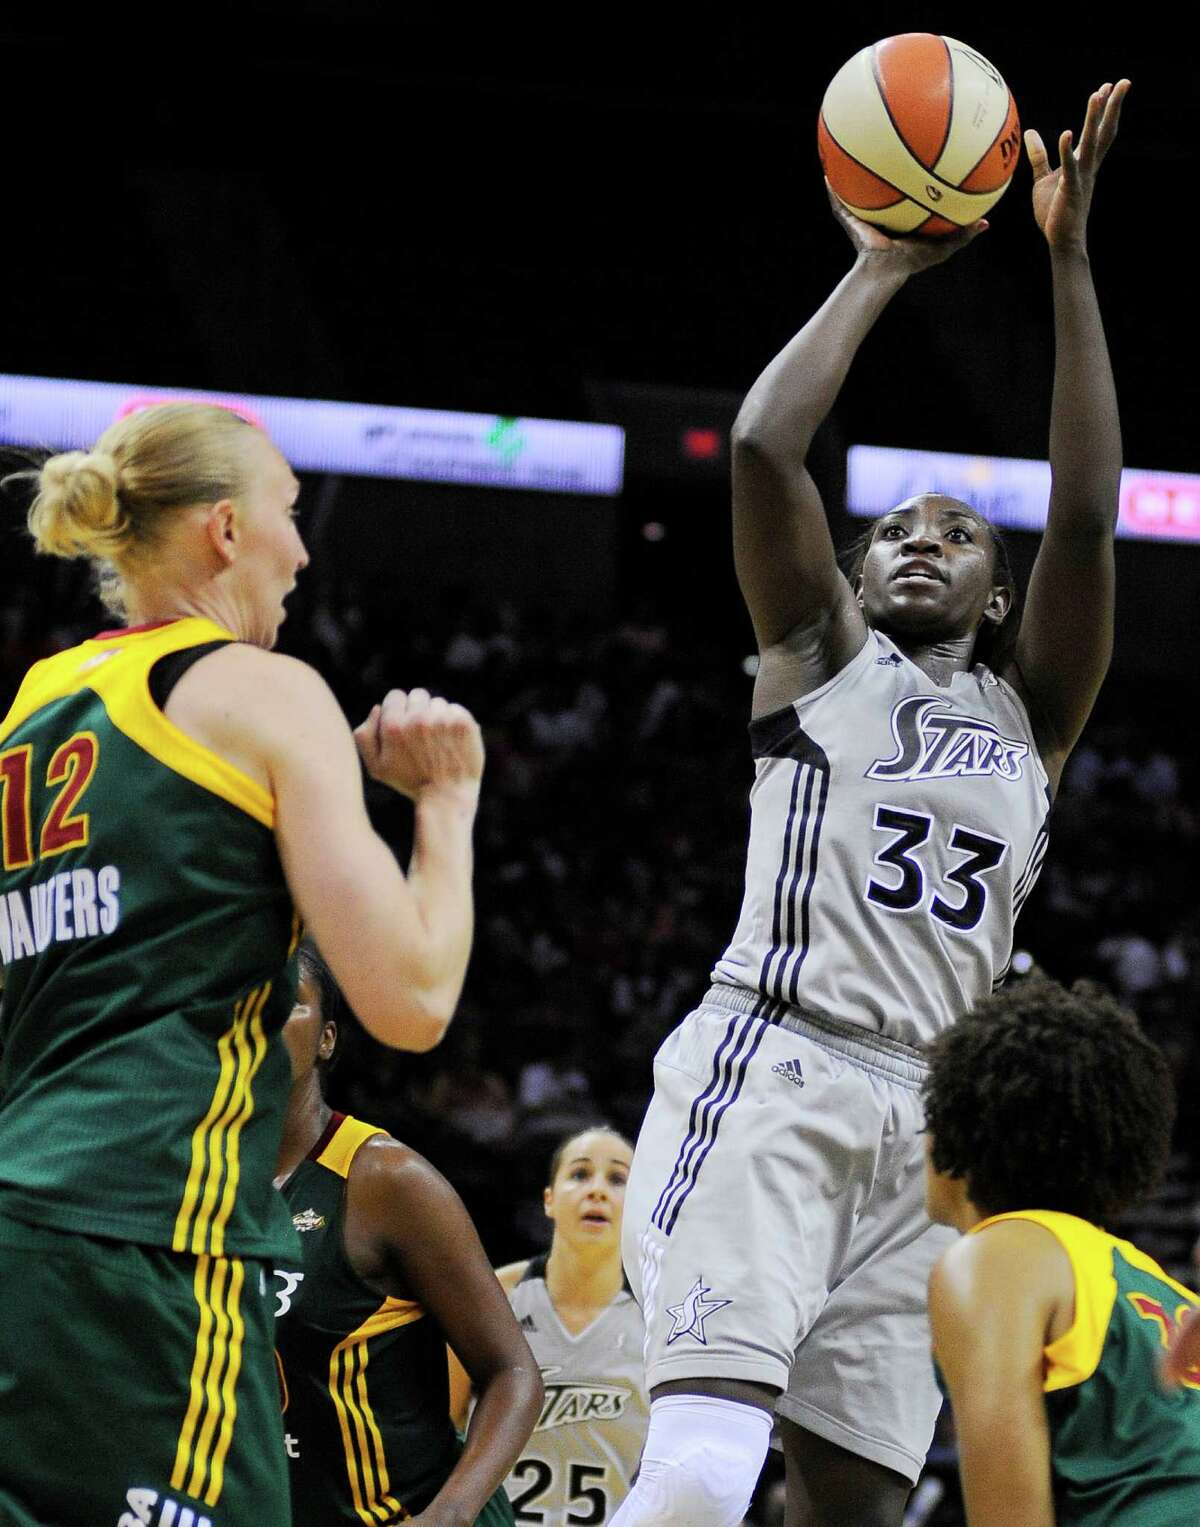 San Antonio Silver Stars' Sophia Young (33) shoots between Seattle Storm's Ann Wauters (12), of Belgium, and Tanisha Wright during the second half of a WNBA basketball game, Saturday, June 9, 2012, in San Antonio. San Antonio won 80-67.